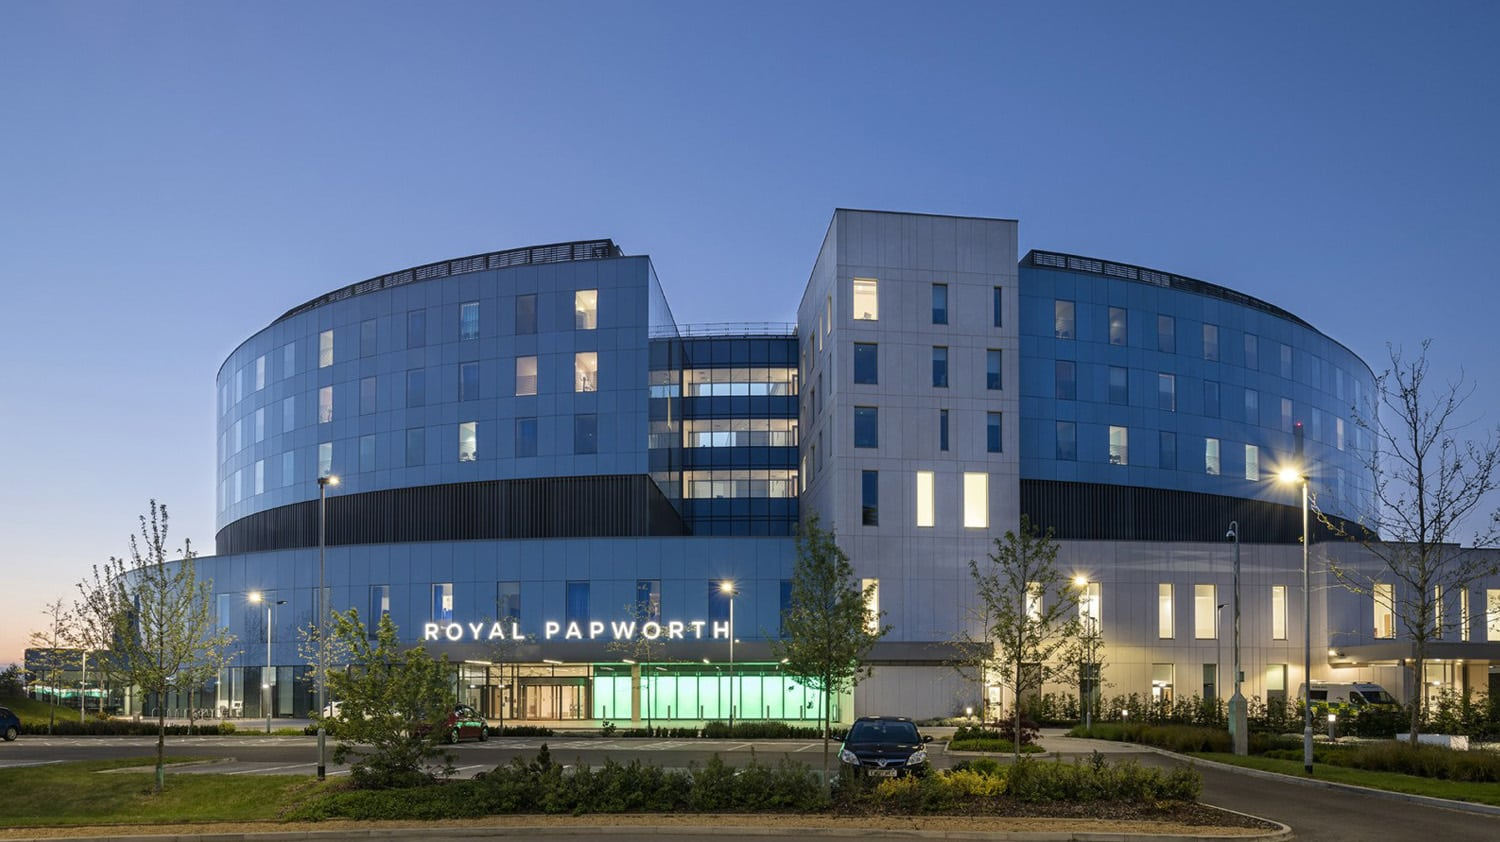 photo of Royal Papworth hospital where Dr. Leonard Shapiro practices